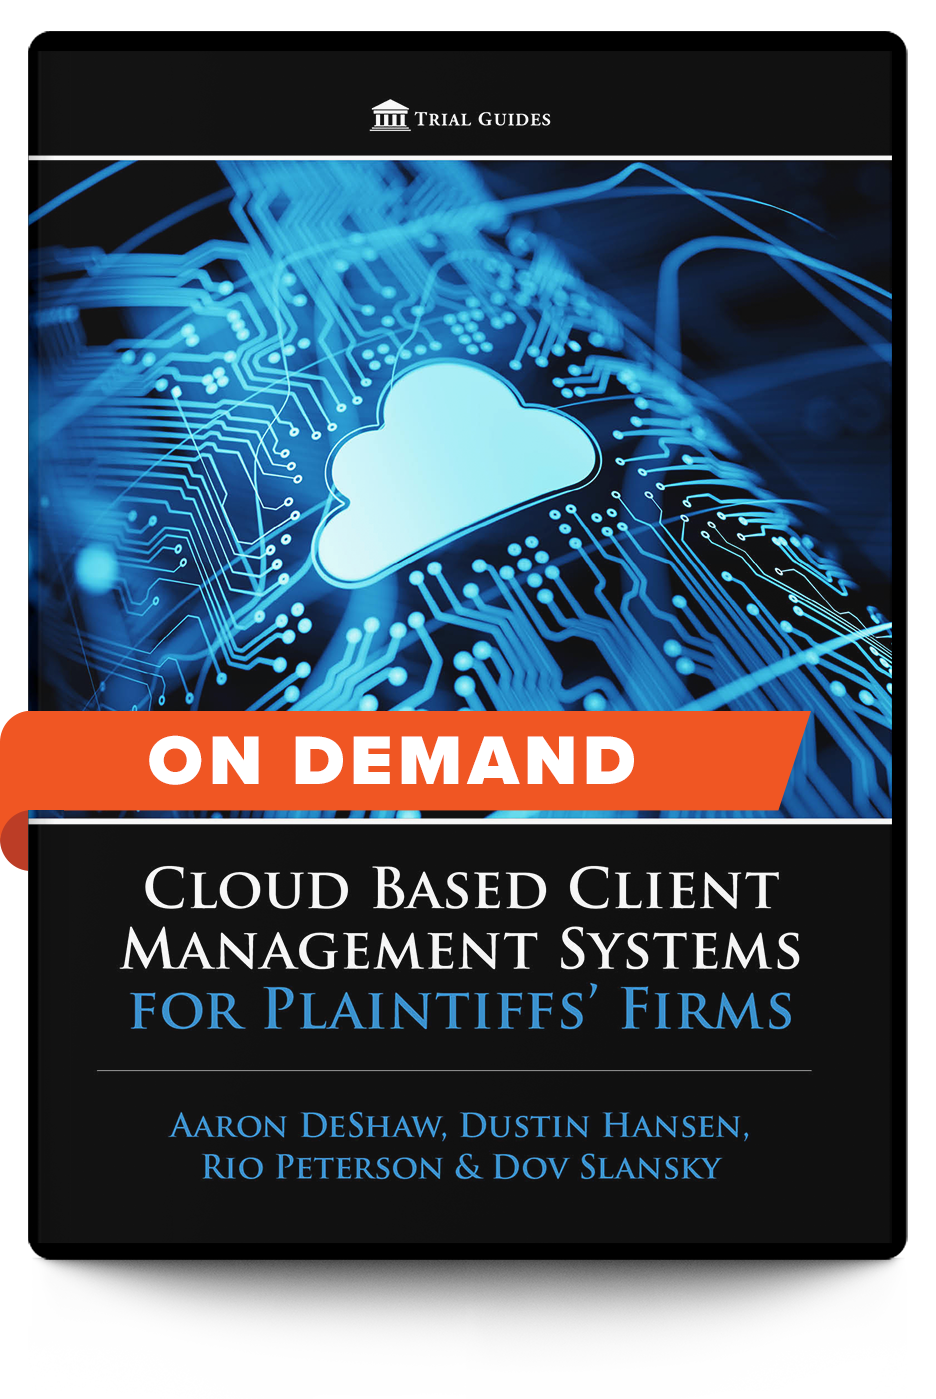 Cloud Based Client Management Systems for Plaintiffs' Firms - On Demand